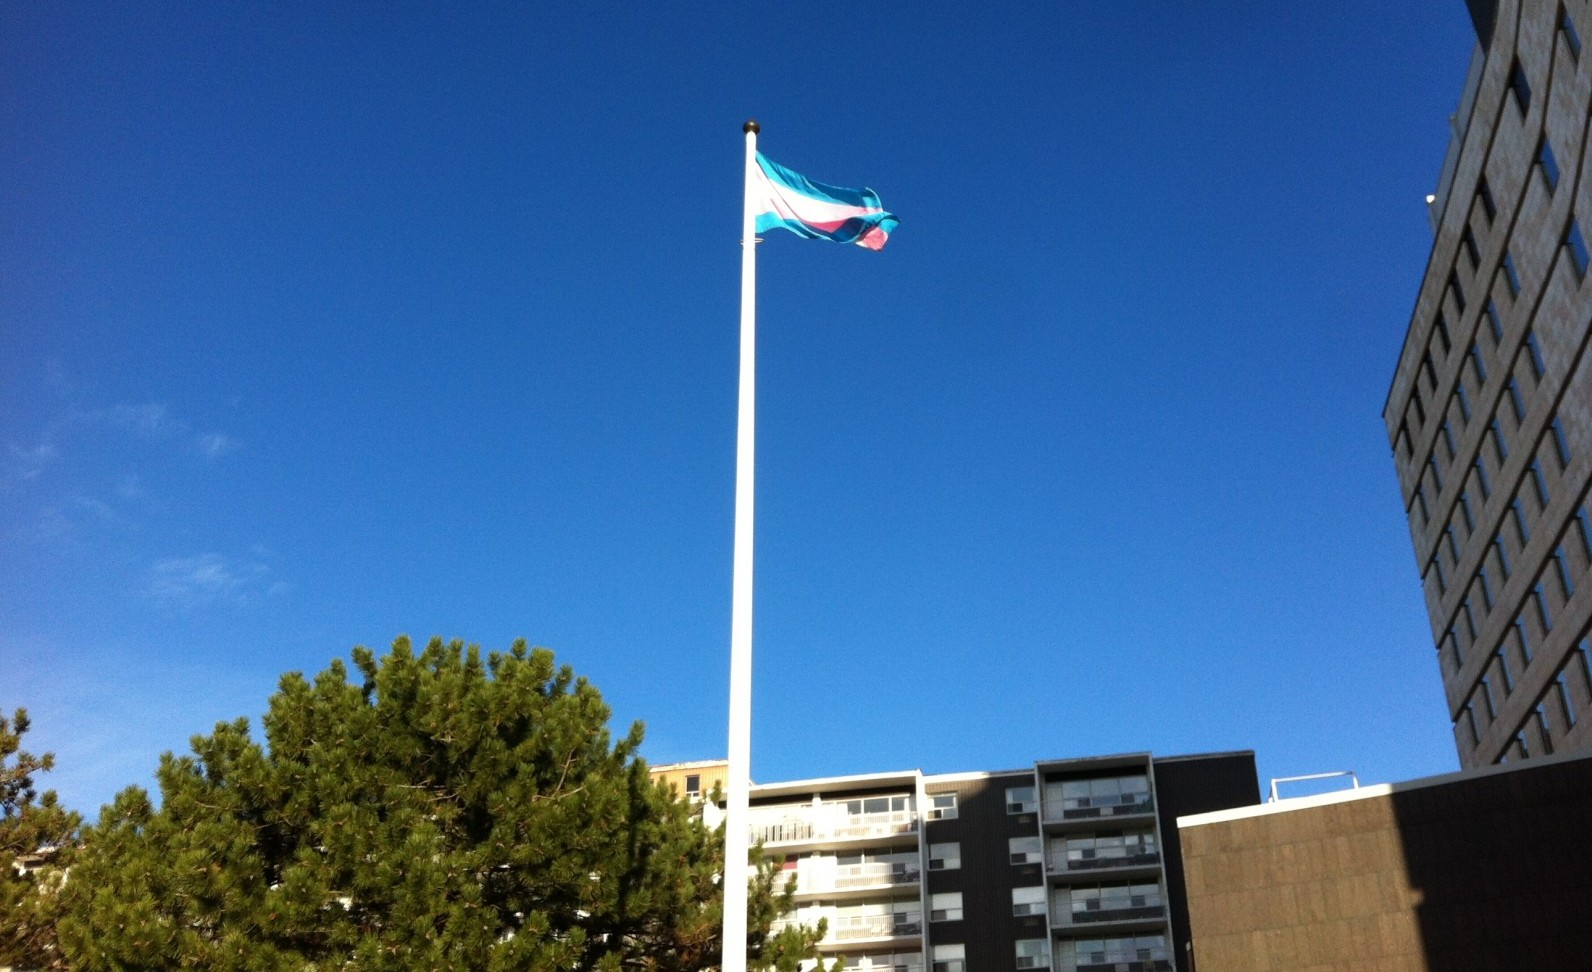 Trans pride flag flown at London City Hall sign of progress